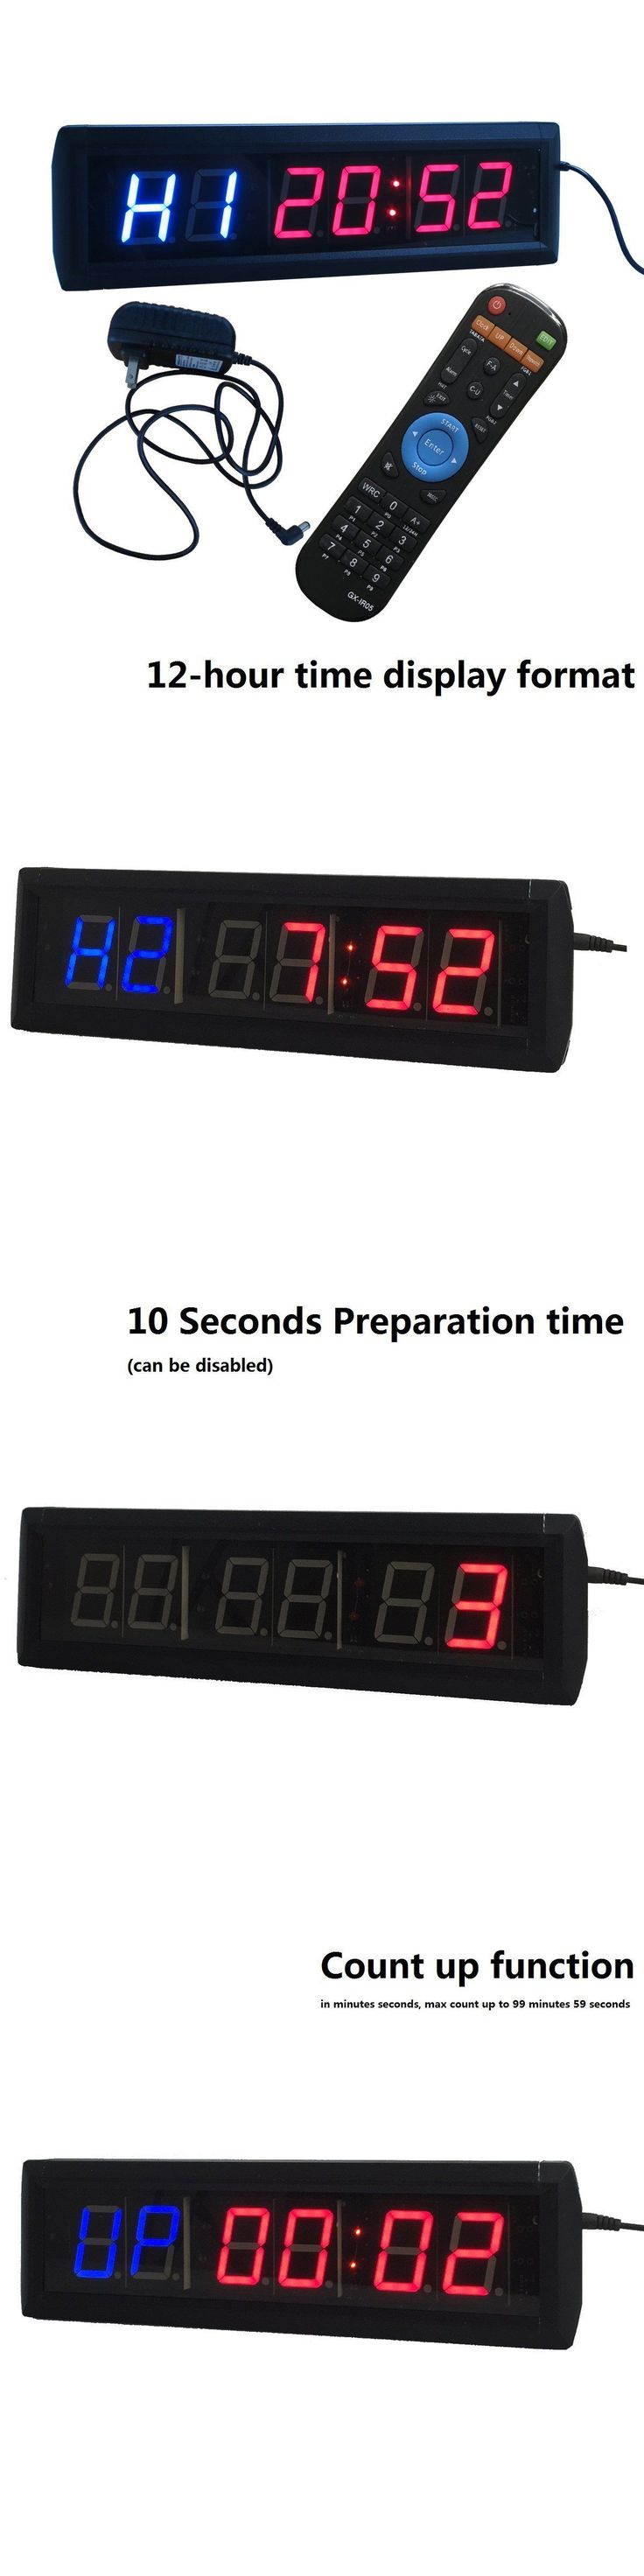 Stopwatches 166149: Crossfit Interval Timer Stop Watch Wall Clock Remote Control 14 X4 X1.5 Manage -> BUY IT NOW ONLY: $104.77 on eBay!